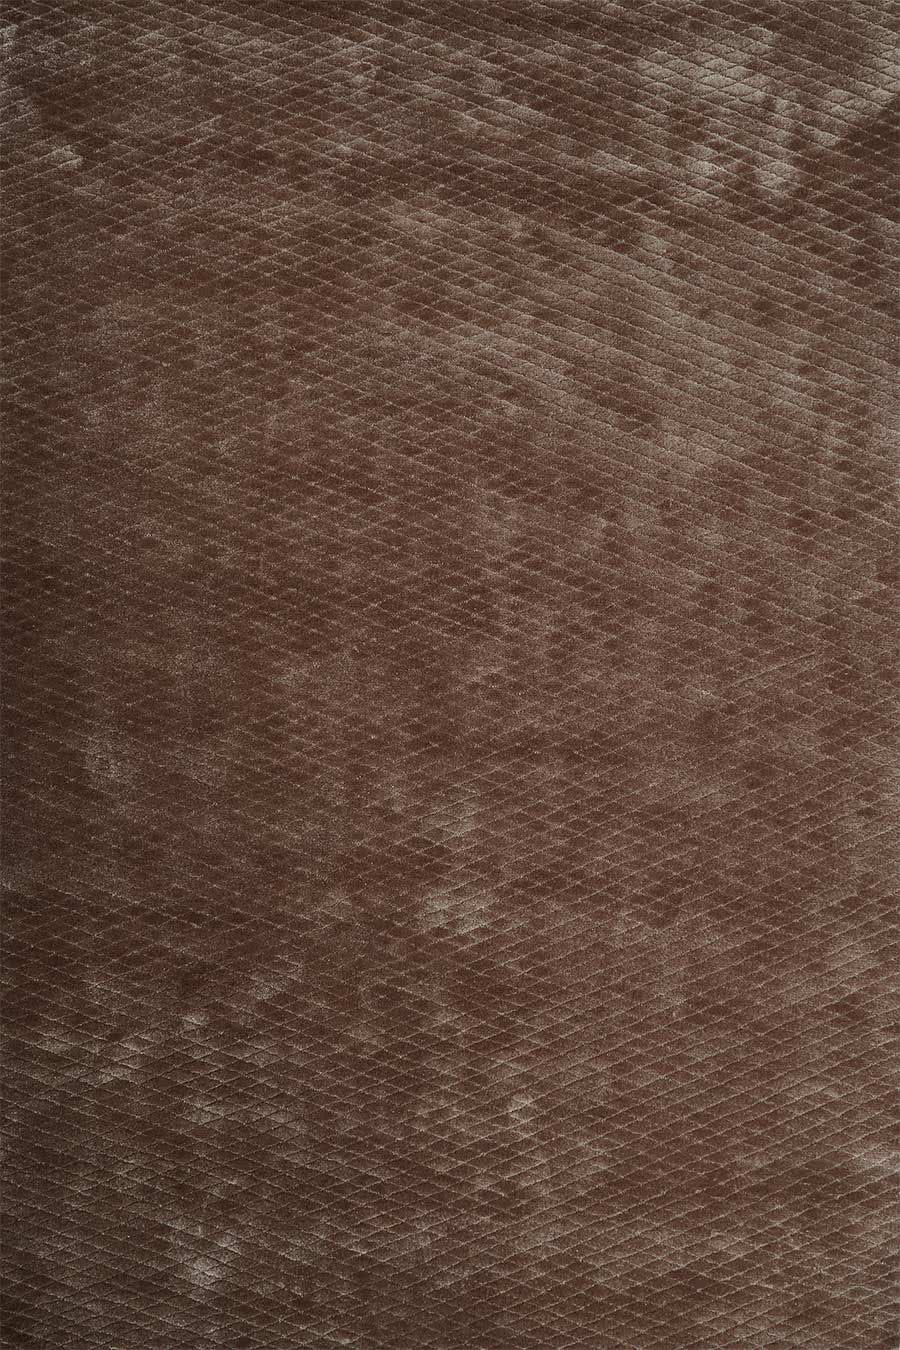 Overhead view of textured Diamond Velour rug in brown colour